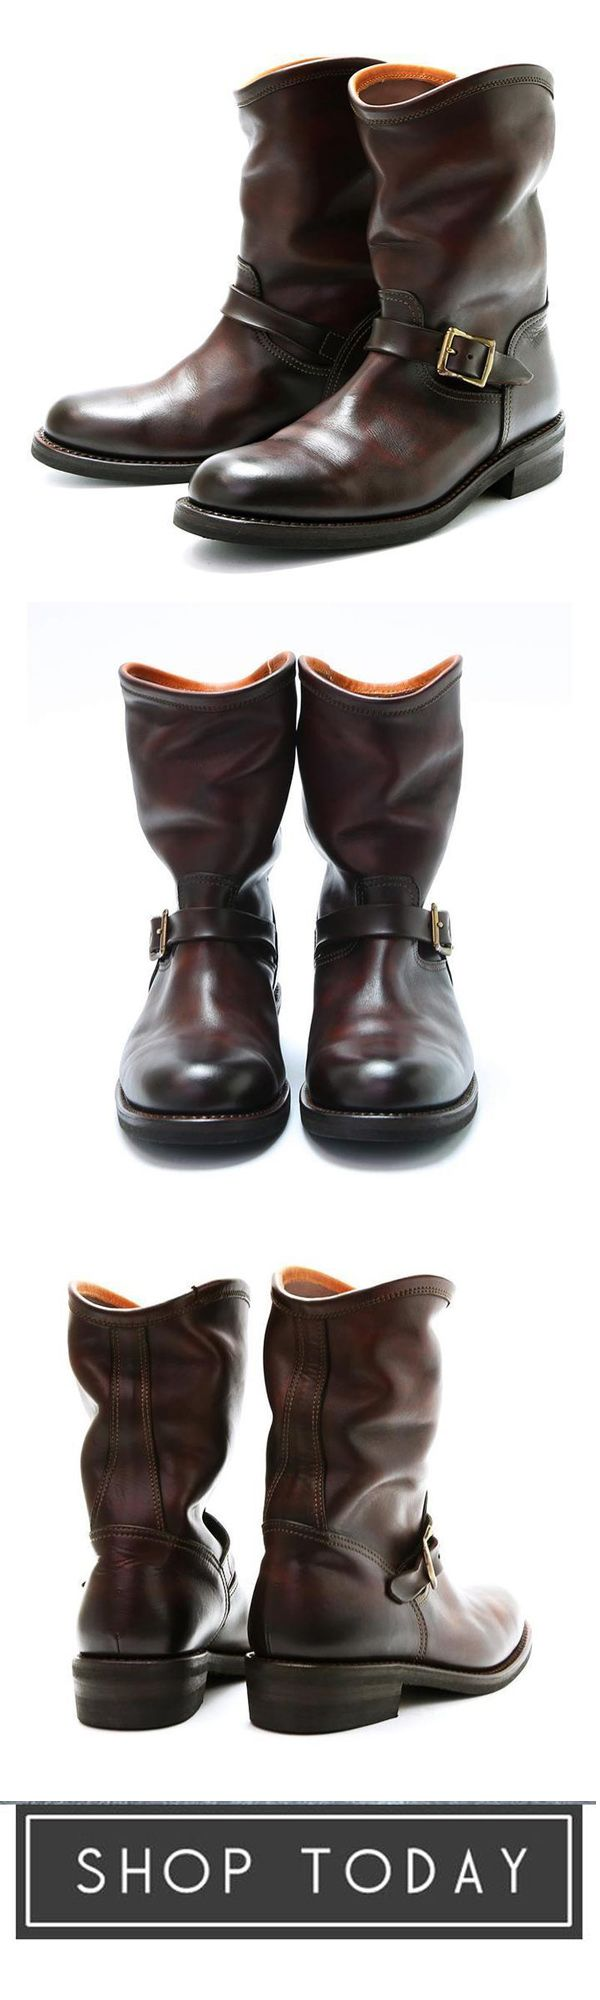 Menstache Fashion Boots – Andy